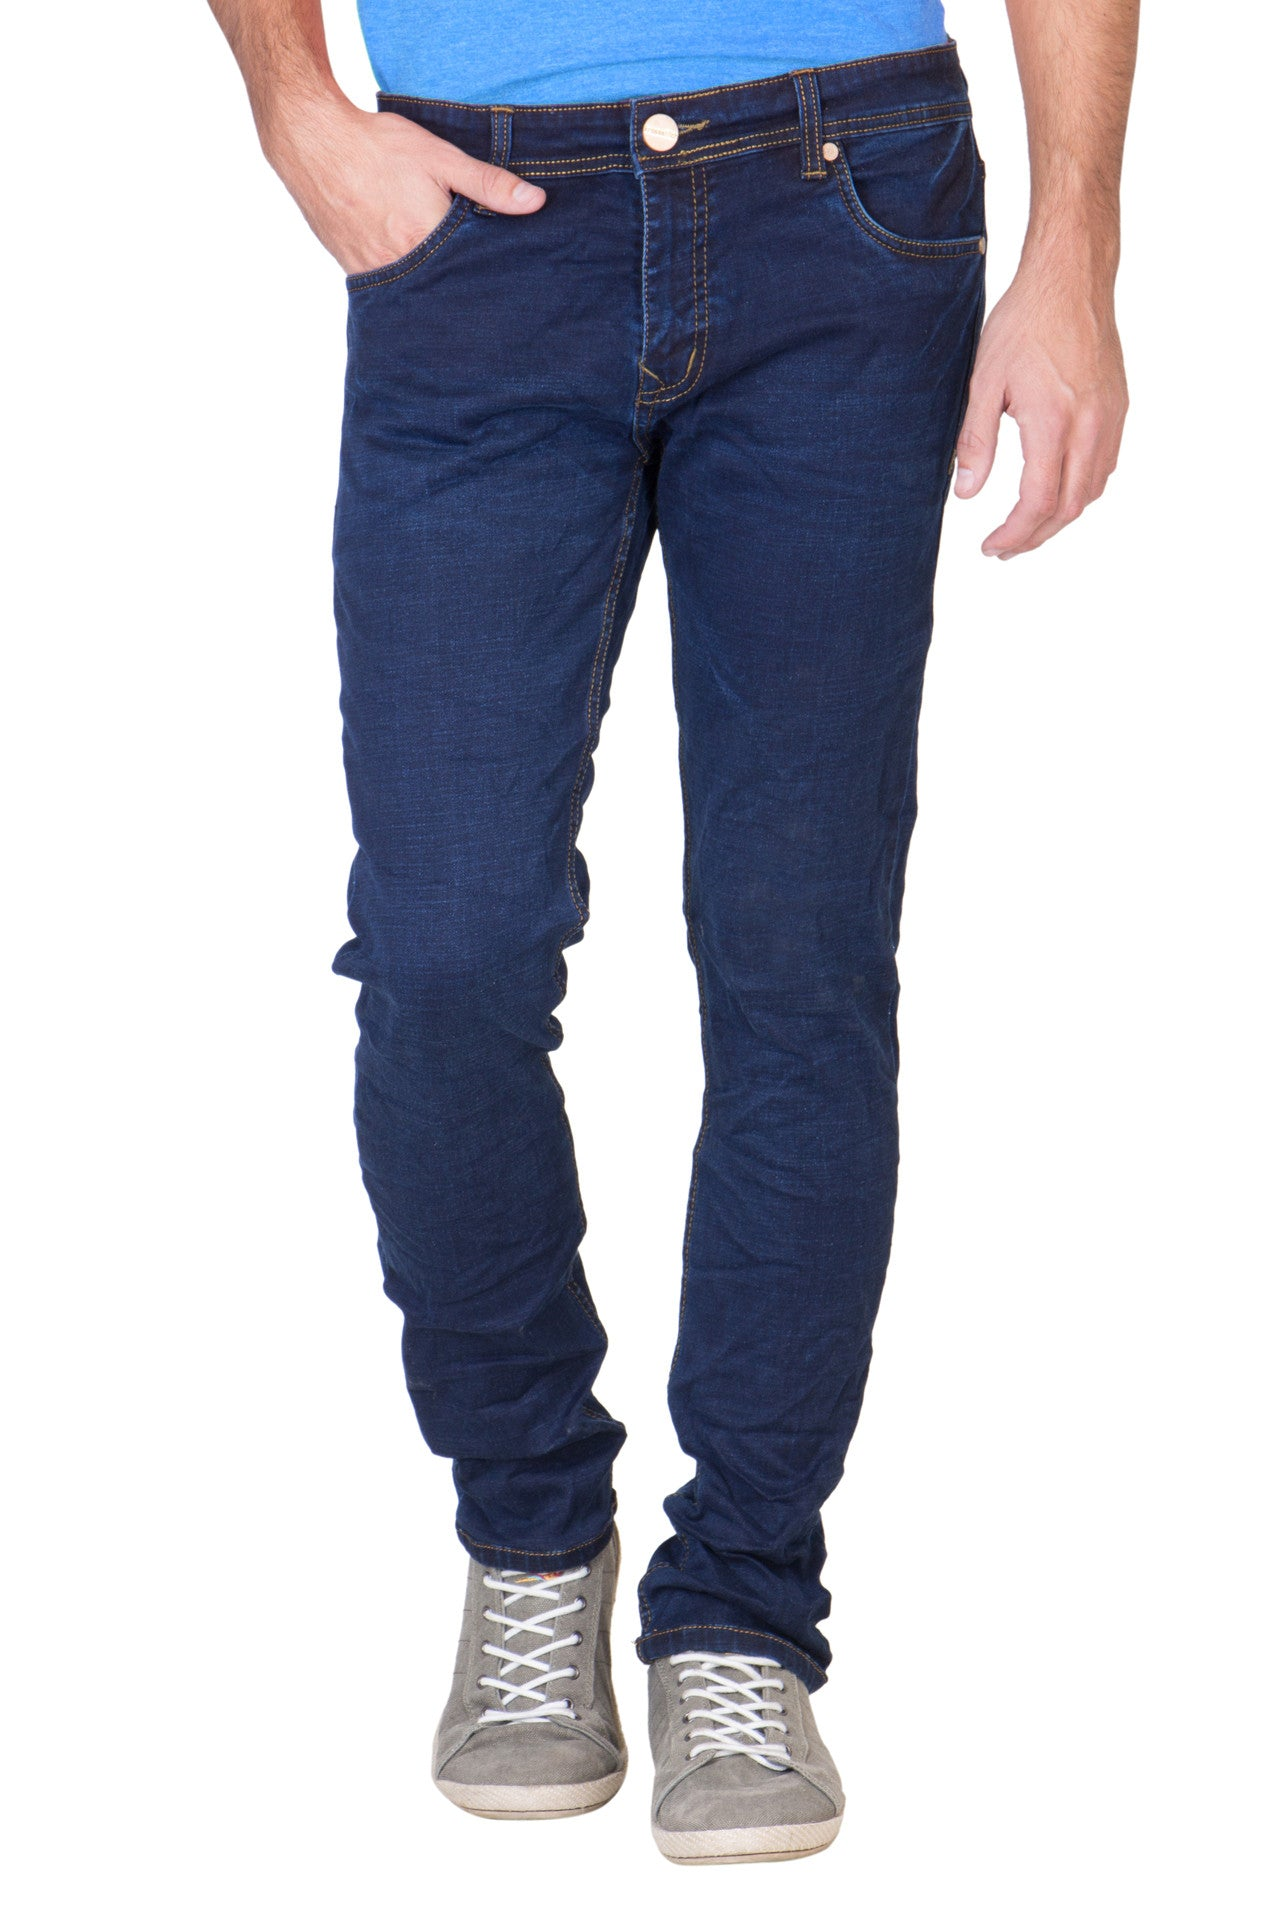 Men's Slim Fit Denim Dark Blue Jeans